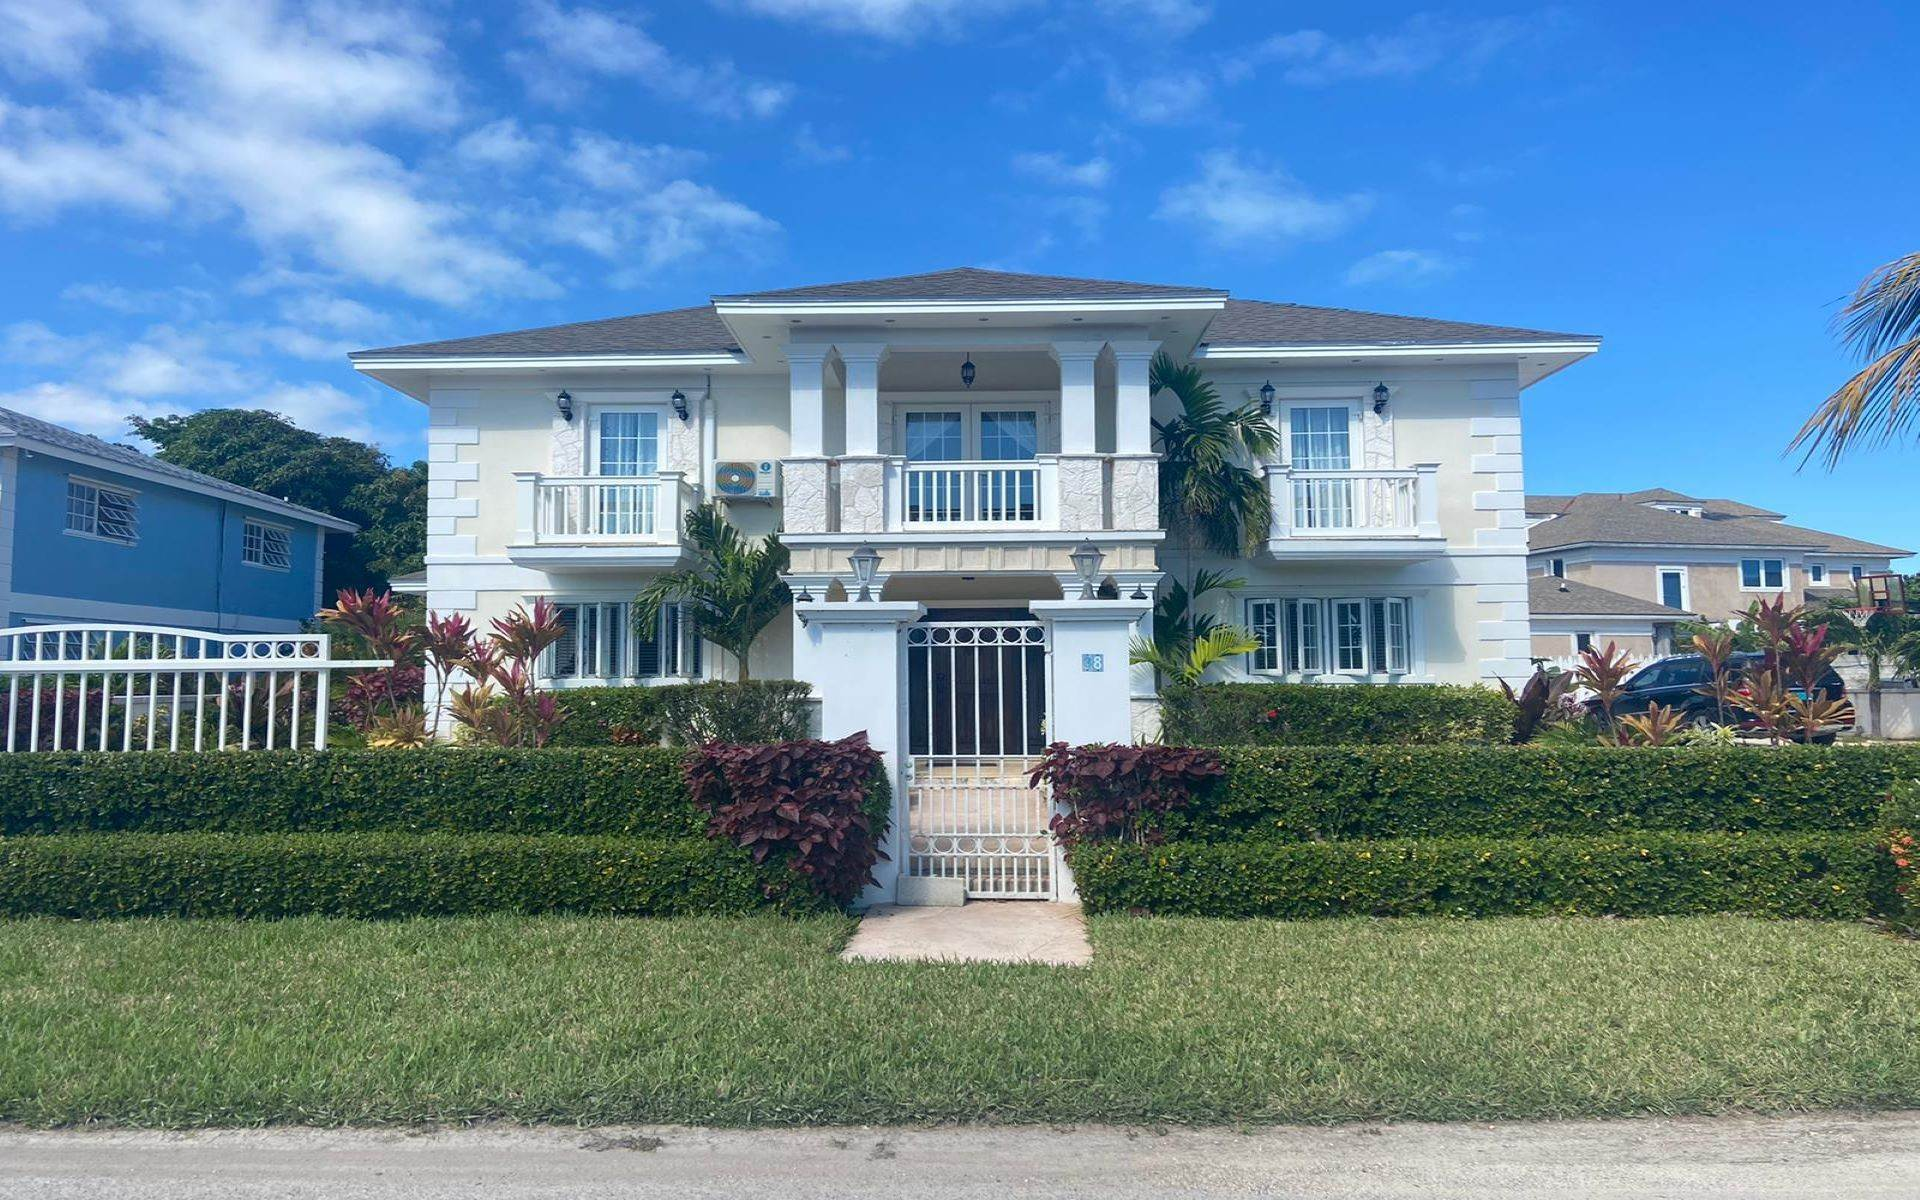 Co-op / Condo for Rent at Brand New 1 Bedroom Apartment in East New Providence - MLS 42950 Nassau And Paradise Island, Bahamas